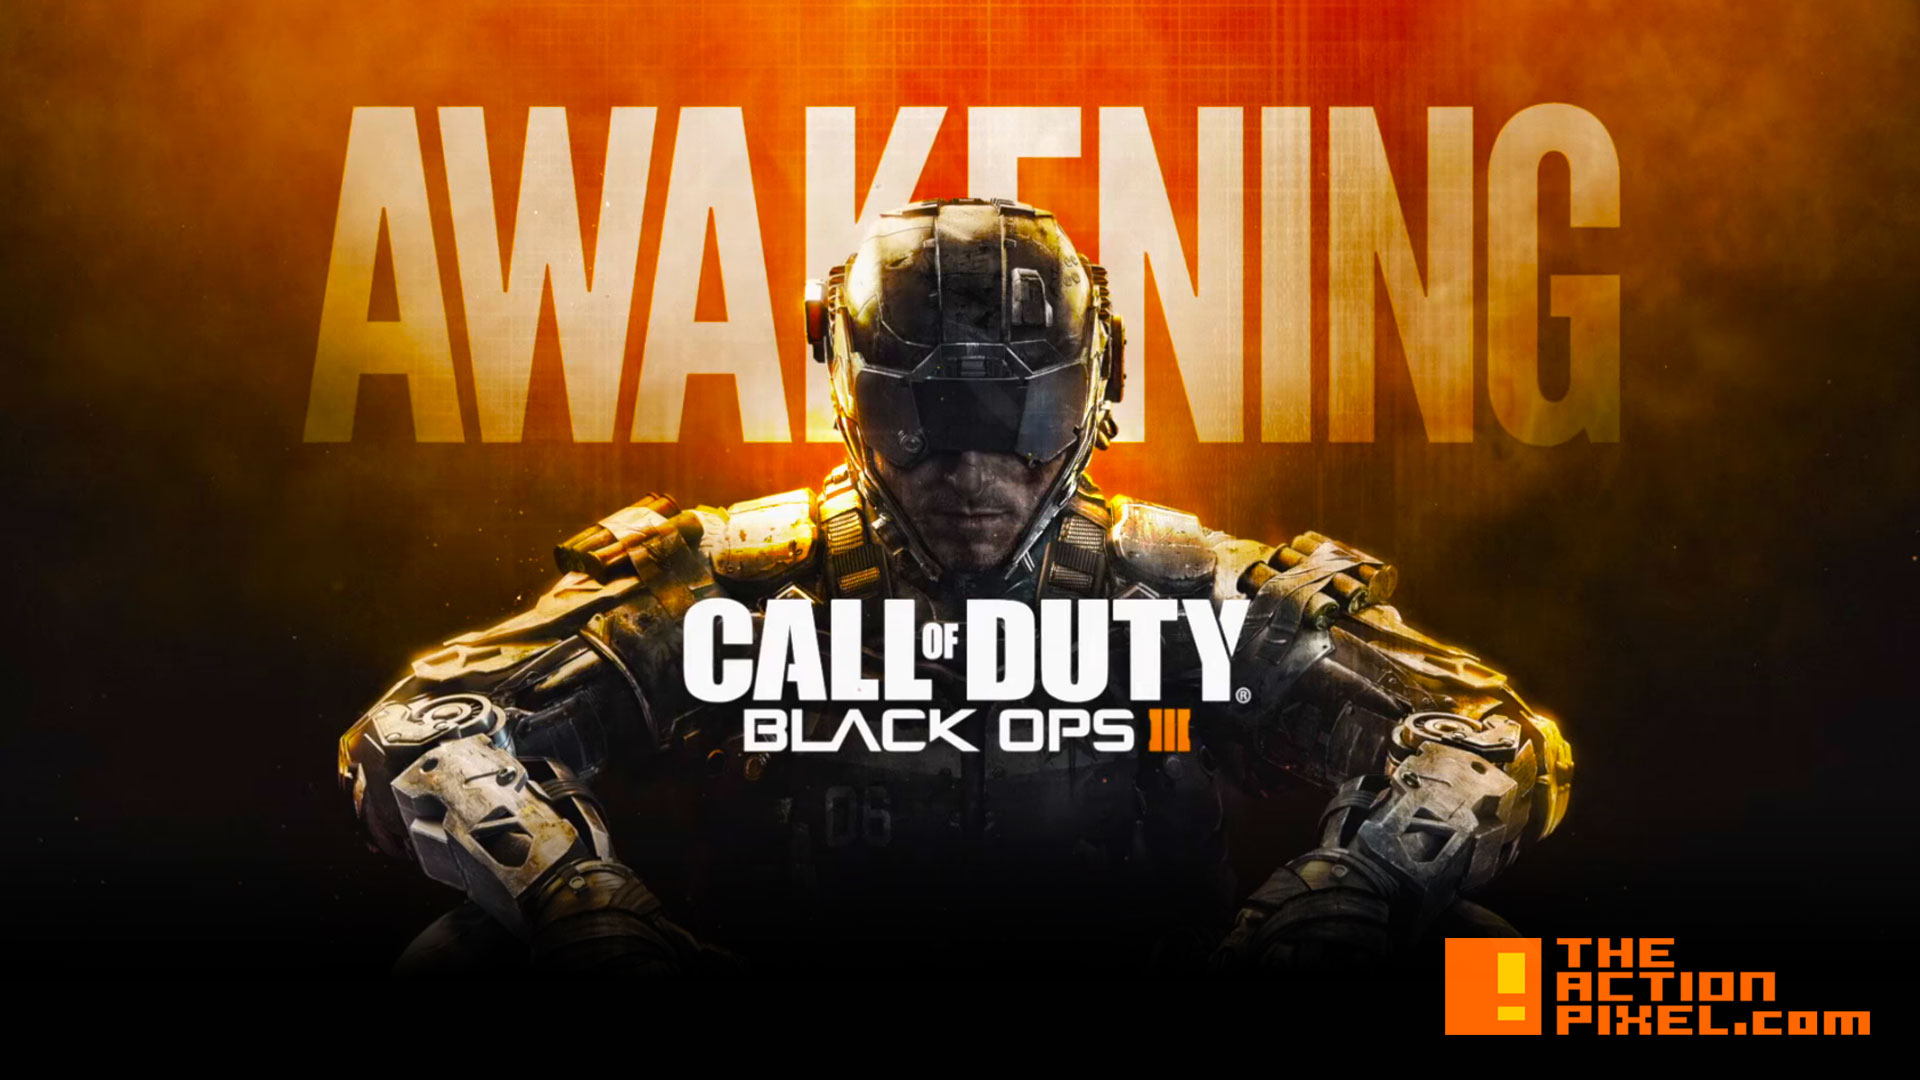 call of duty BLACK OPS III 3 awakening. ACTIVISION . TREYARCH. ENTERTAINMENT ON TAP. @THEACTIONPIXEL. THE ACTION PIXEL